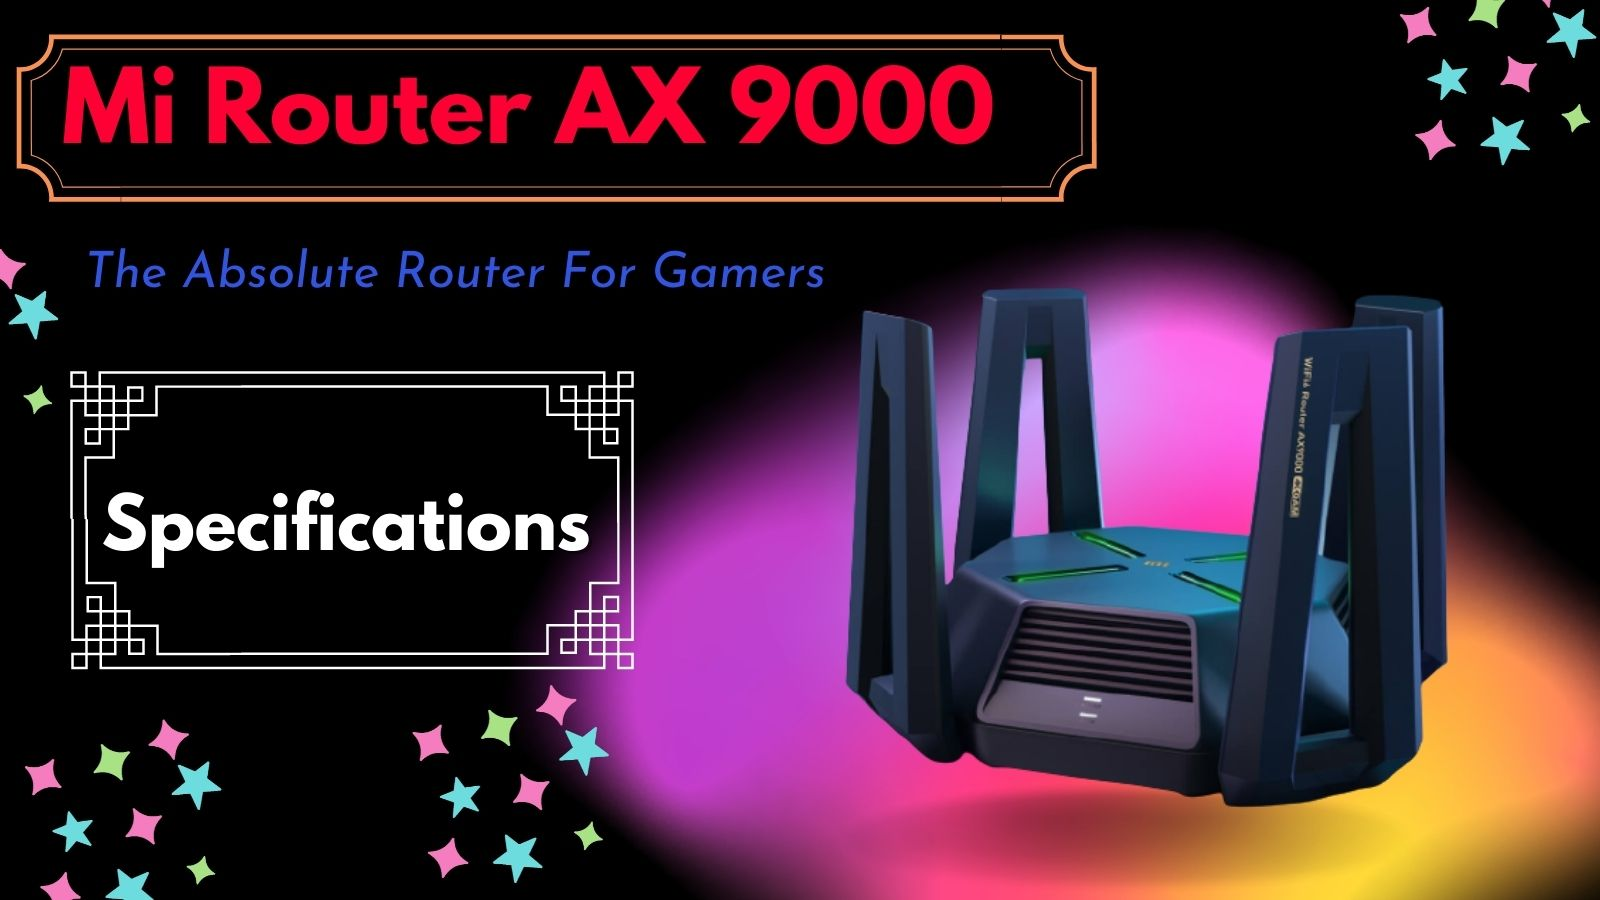 Mi Router AX 9000 Specifications